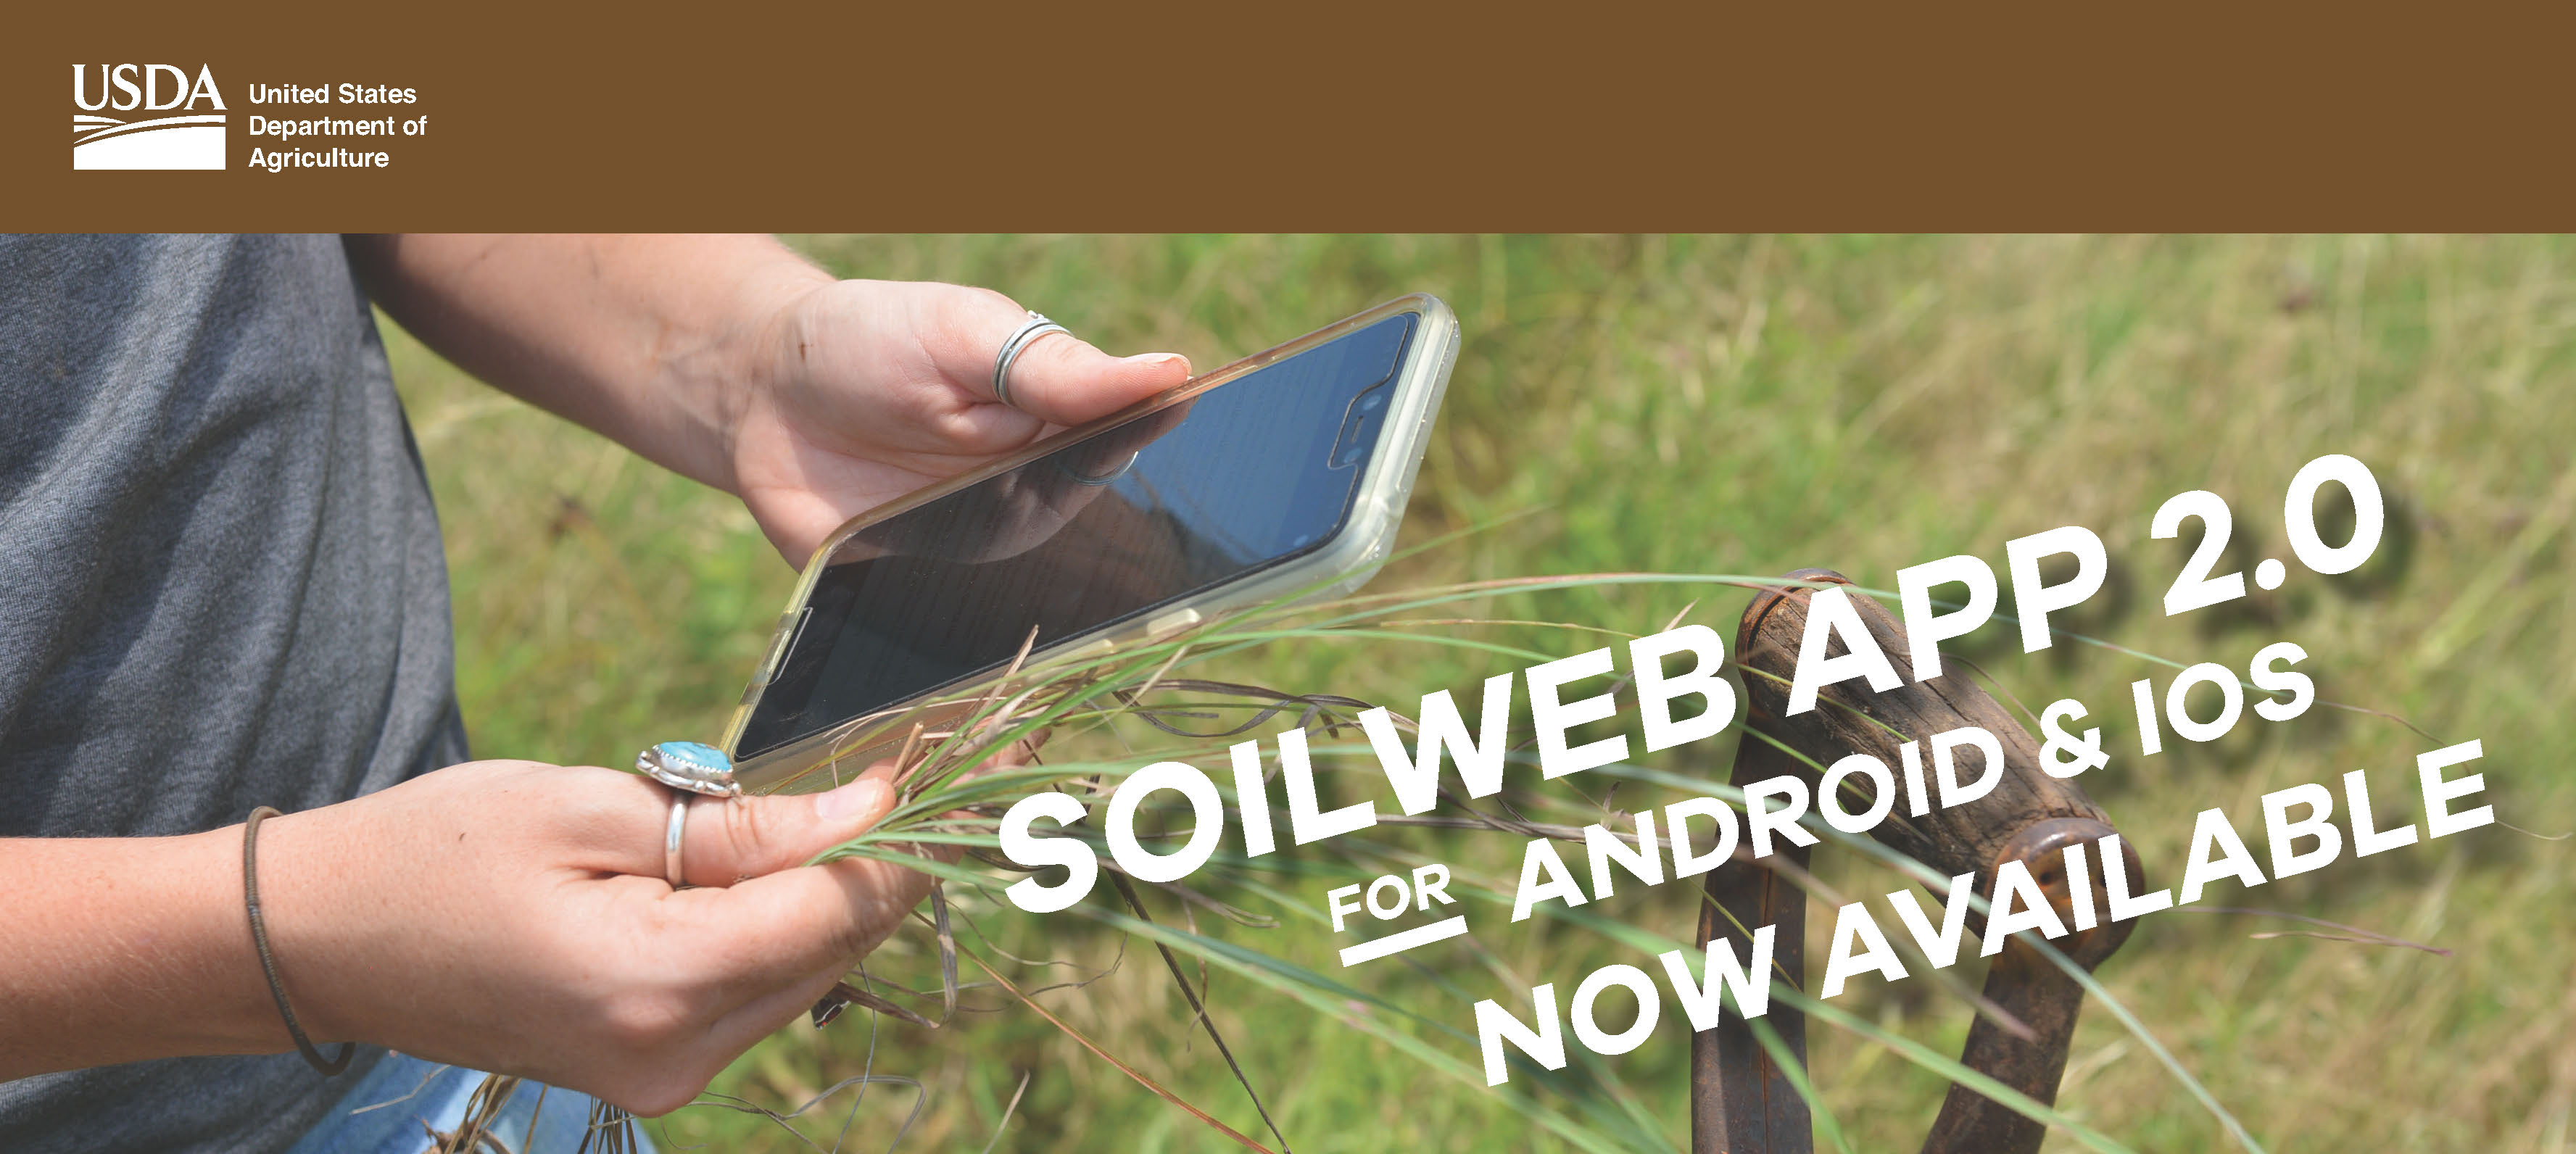 Soil Web App 2.0 for Android & IOS